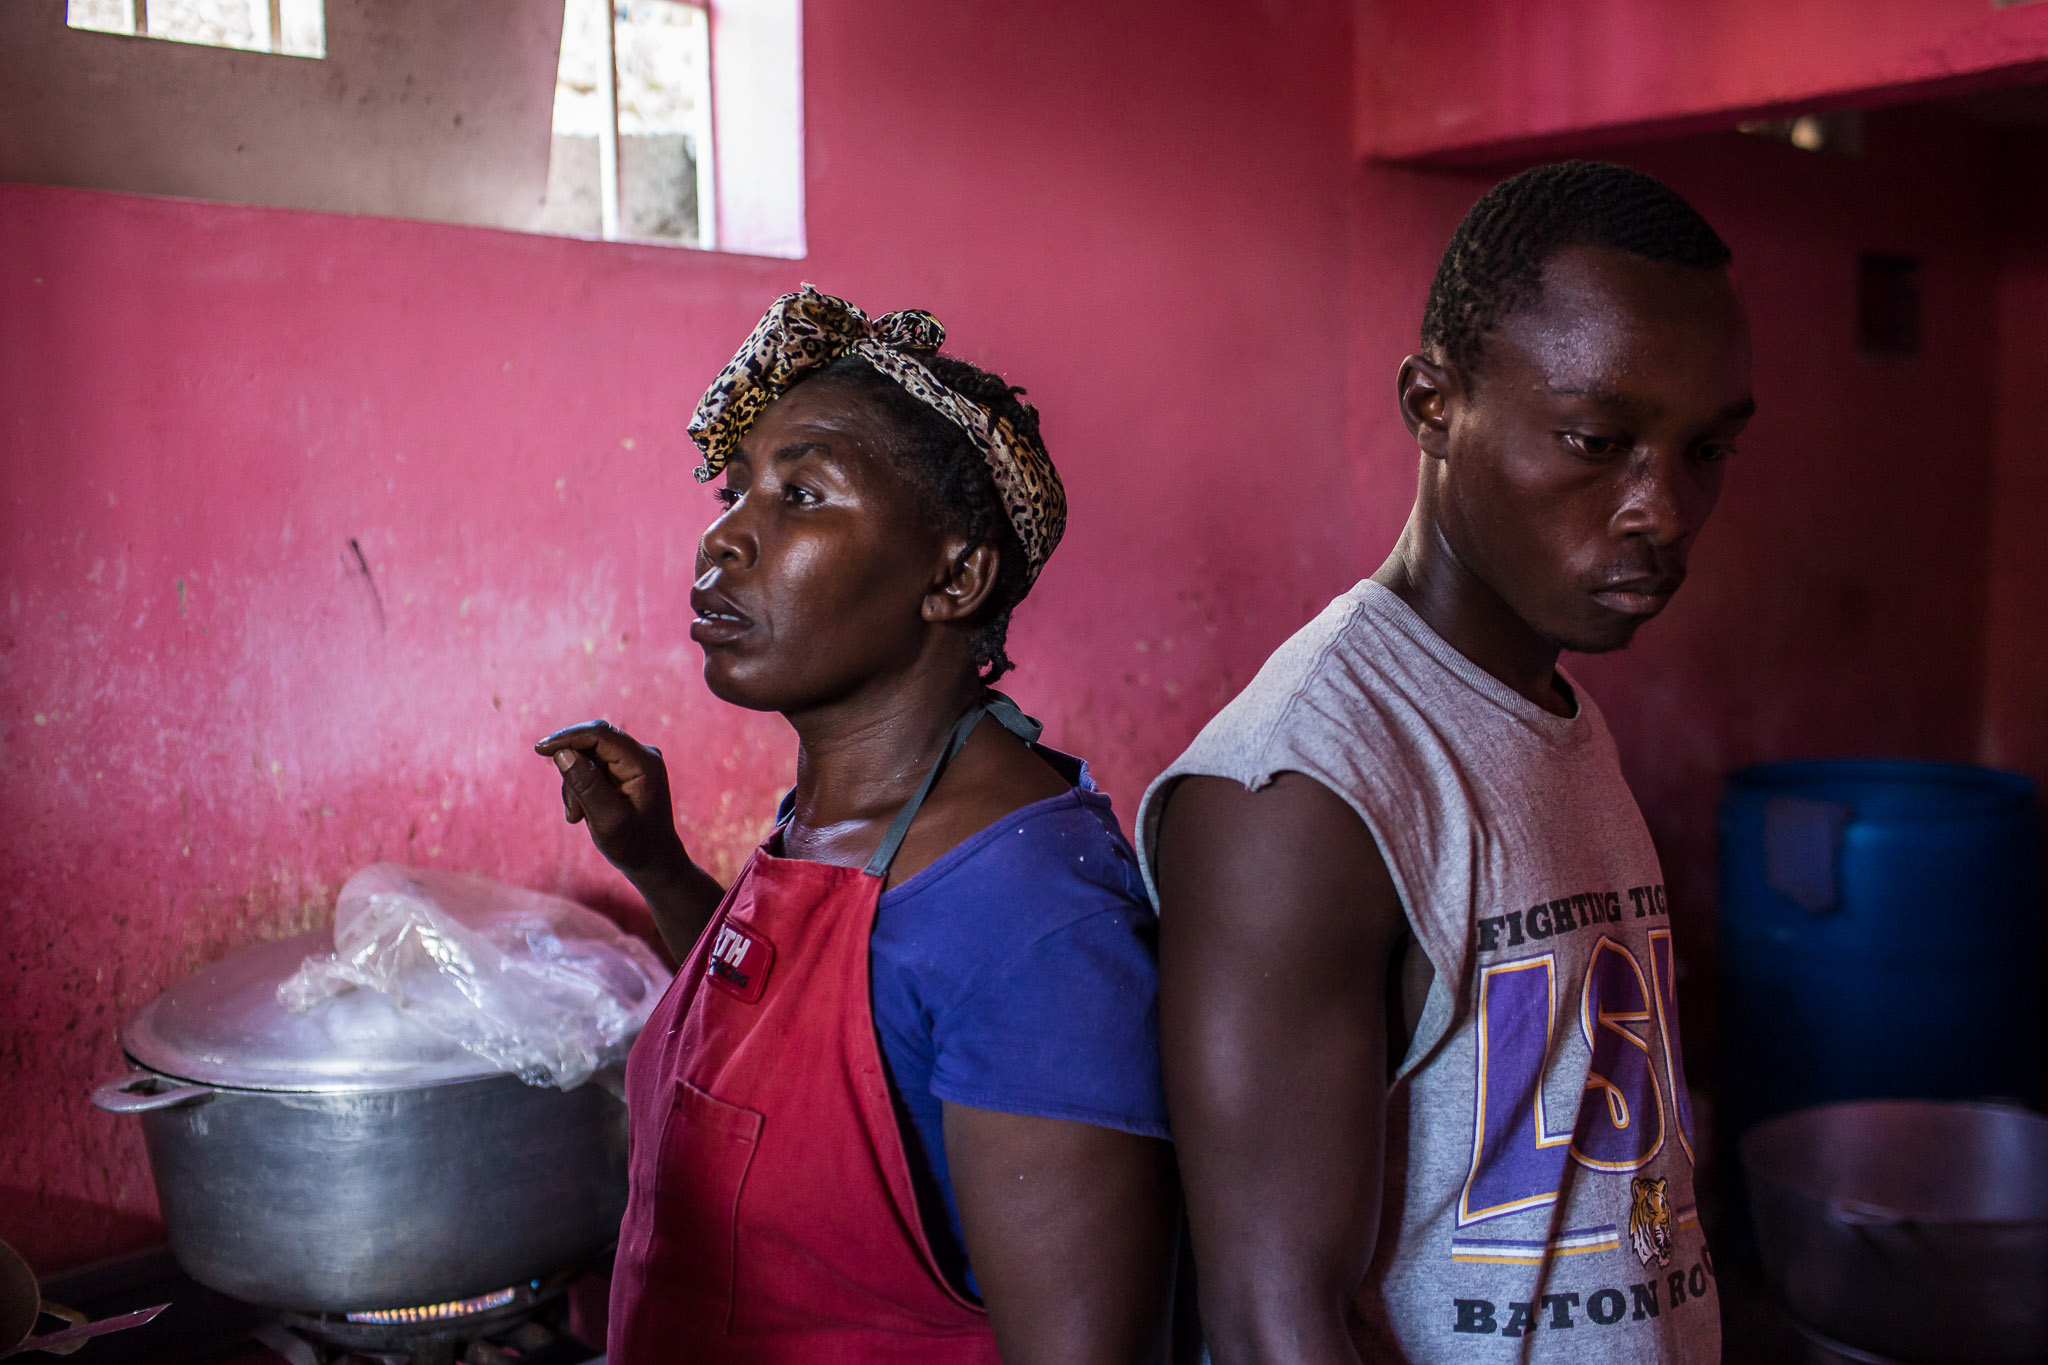 Kitchen workers at a restaurant in the Tapis Rouge neighborhood on Monday, December 22, 2014 in Port-au-Prince, Haiti. The restaurant was initially funded as a government program, and is required to serve meals that cost the equivalent of less than 25 cents US, which both provides cheap food for residents and a local business for entrepreneurs.